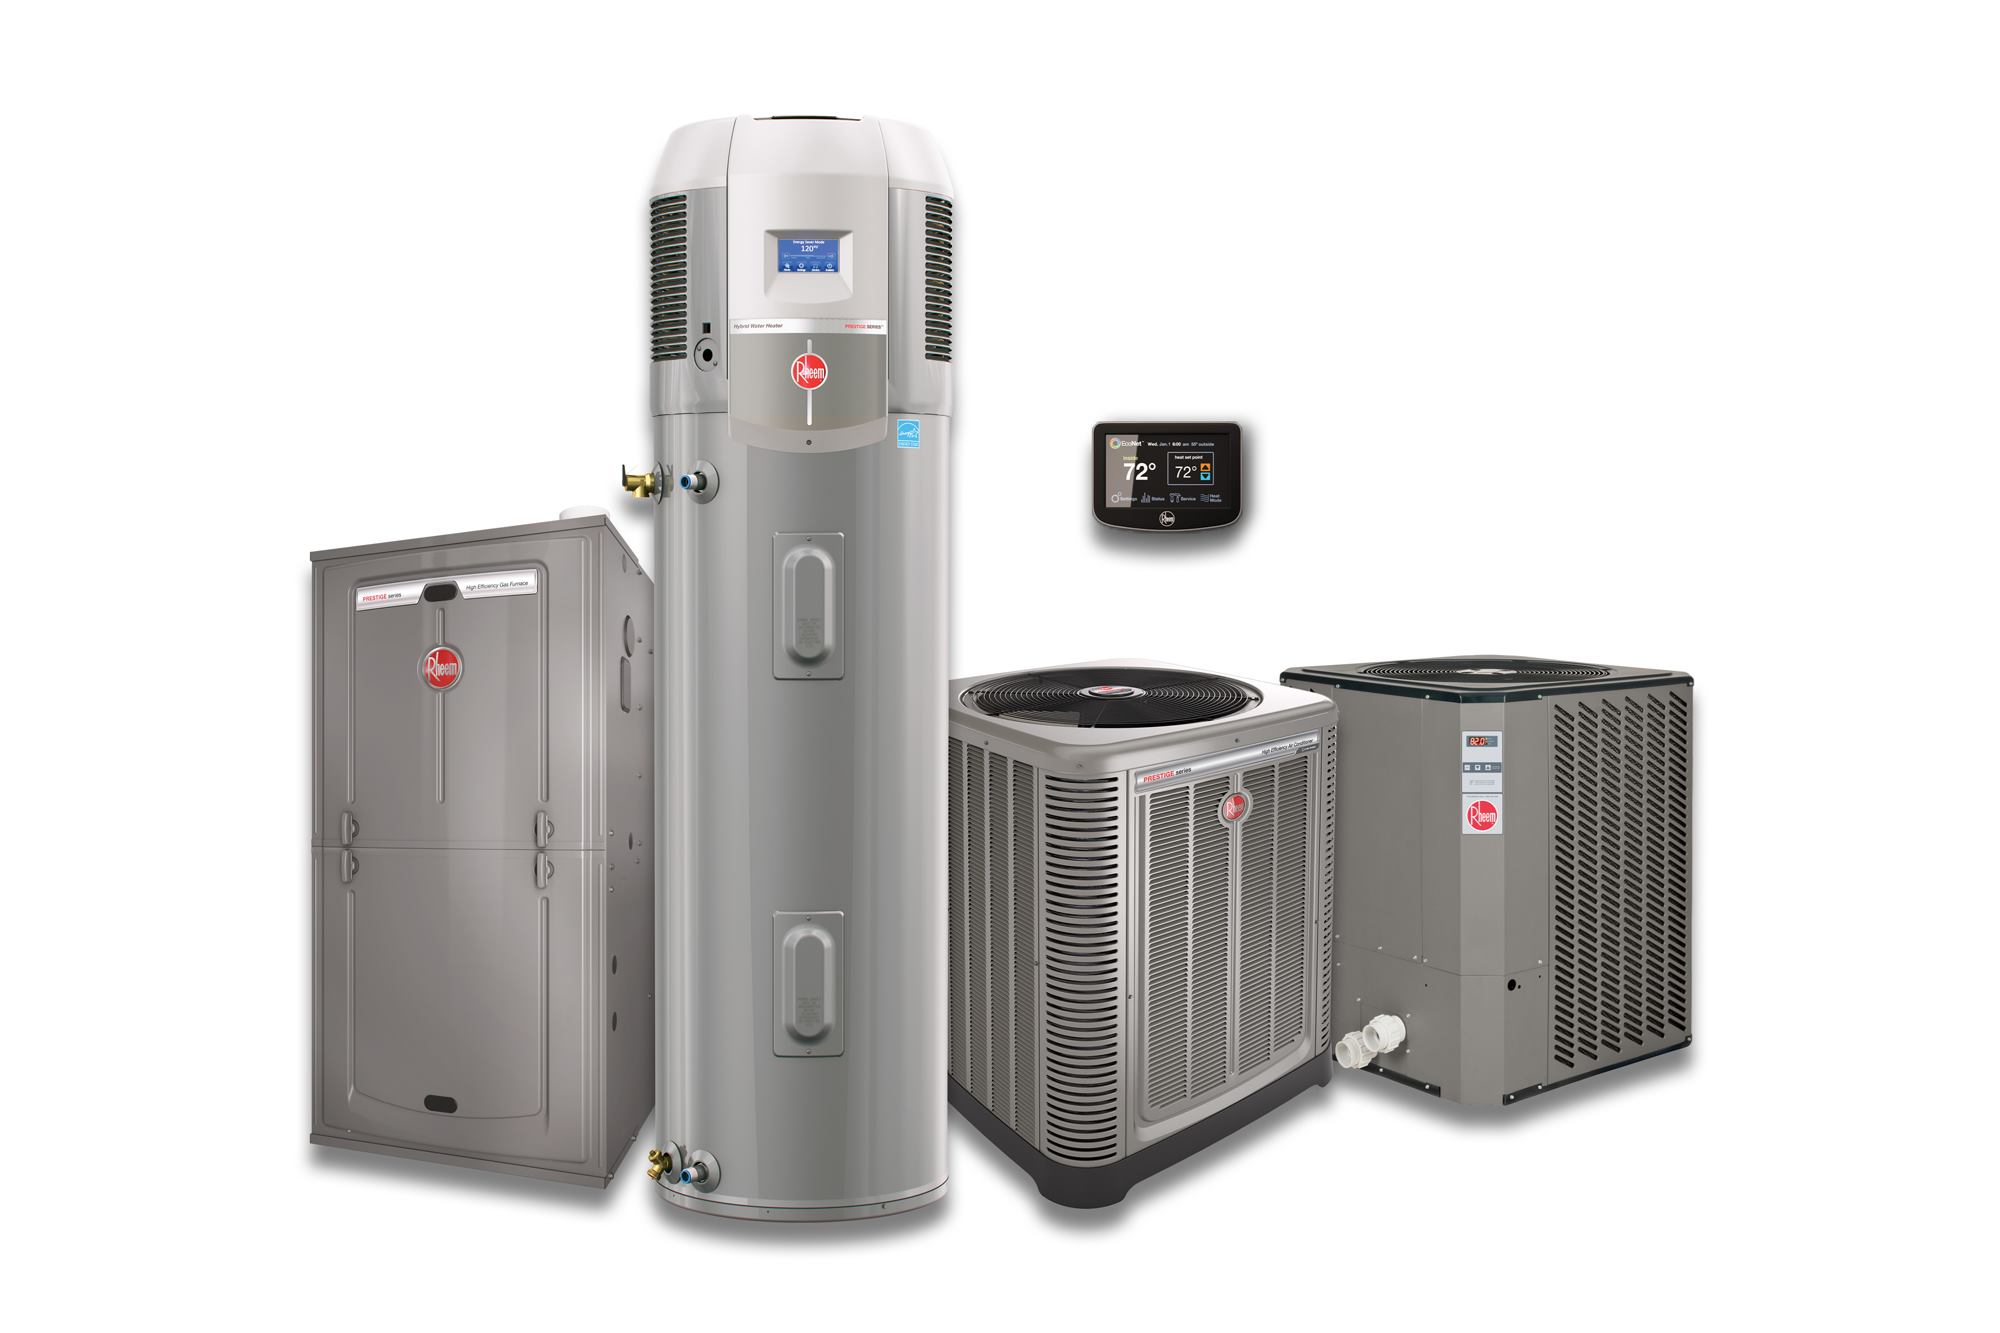 Rheem Econet Brings Wi Fi To Water Heaters Jlc Online